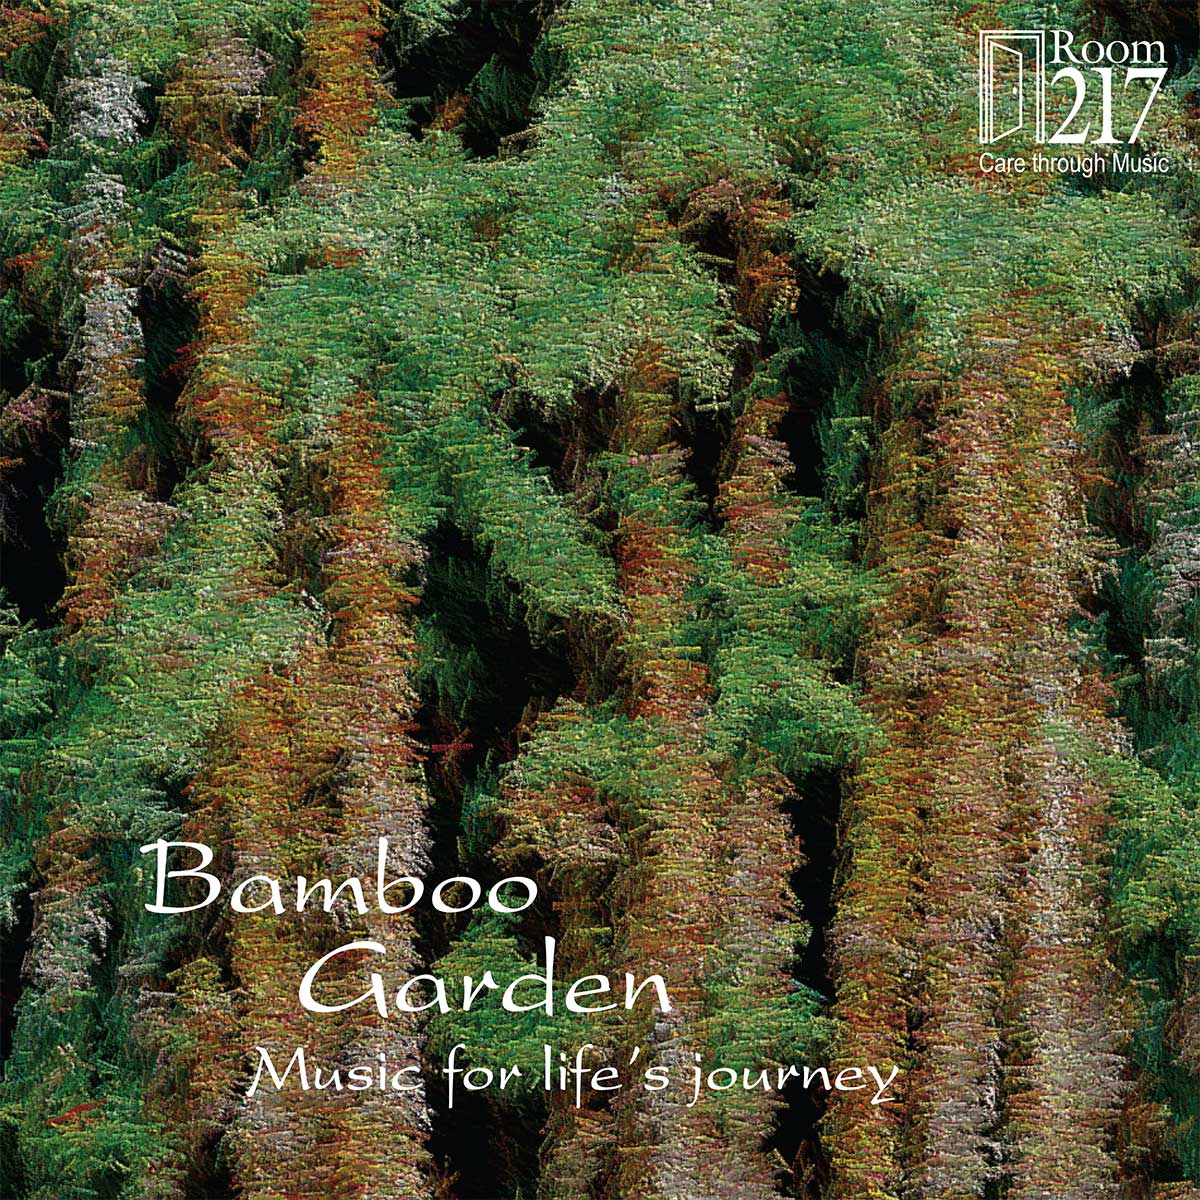 Room 217 - Bamboo Garden - Album art